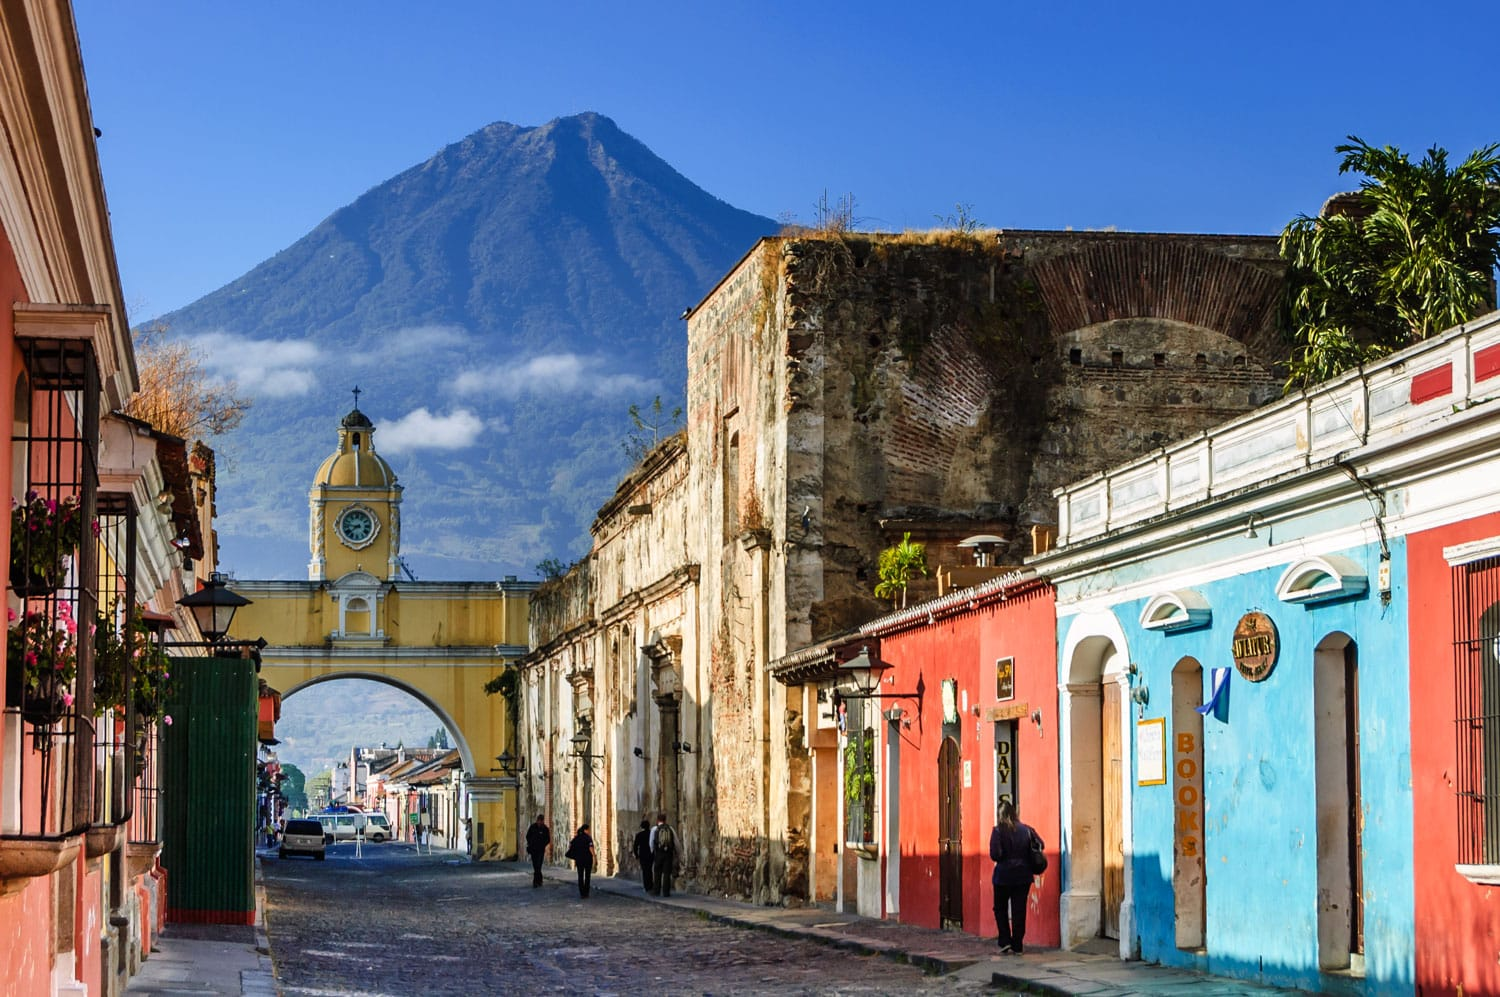 Agua volcano behind Santa Catalina Arch in the colonial town of Antigua, Guatemala